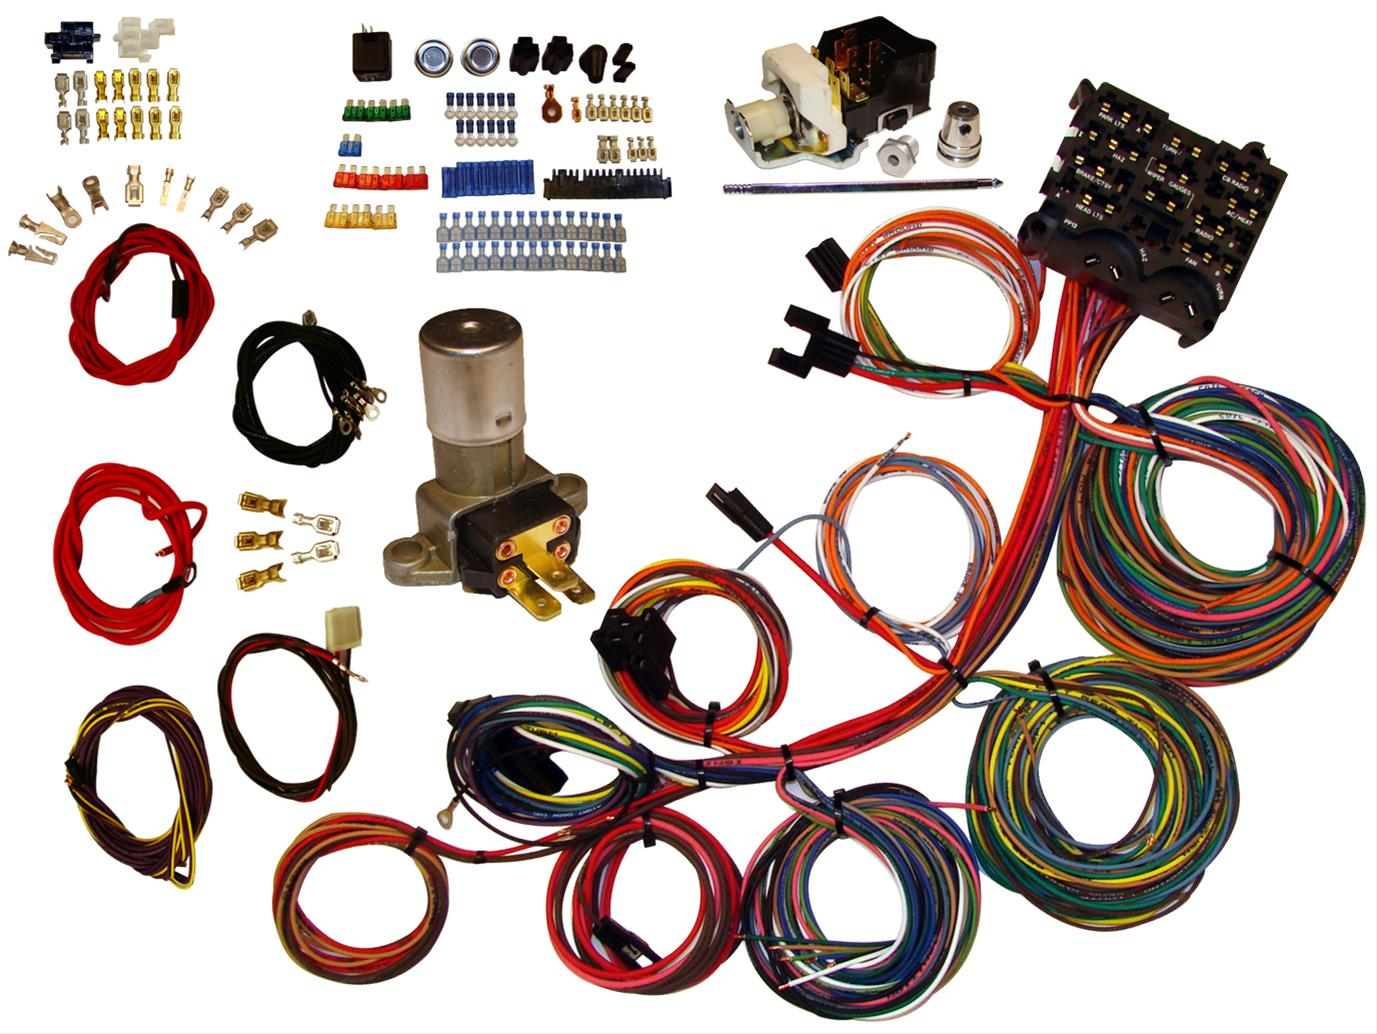 hight resolution of american autowire power plus 13 wiring harness kits 510004 free shipping on orders over 99 at summit racing